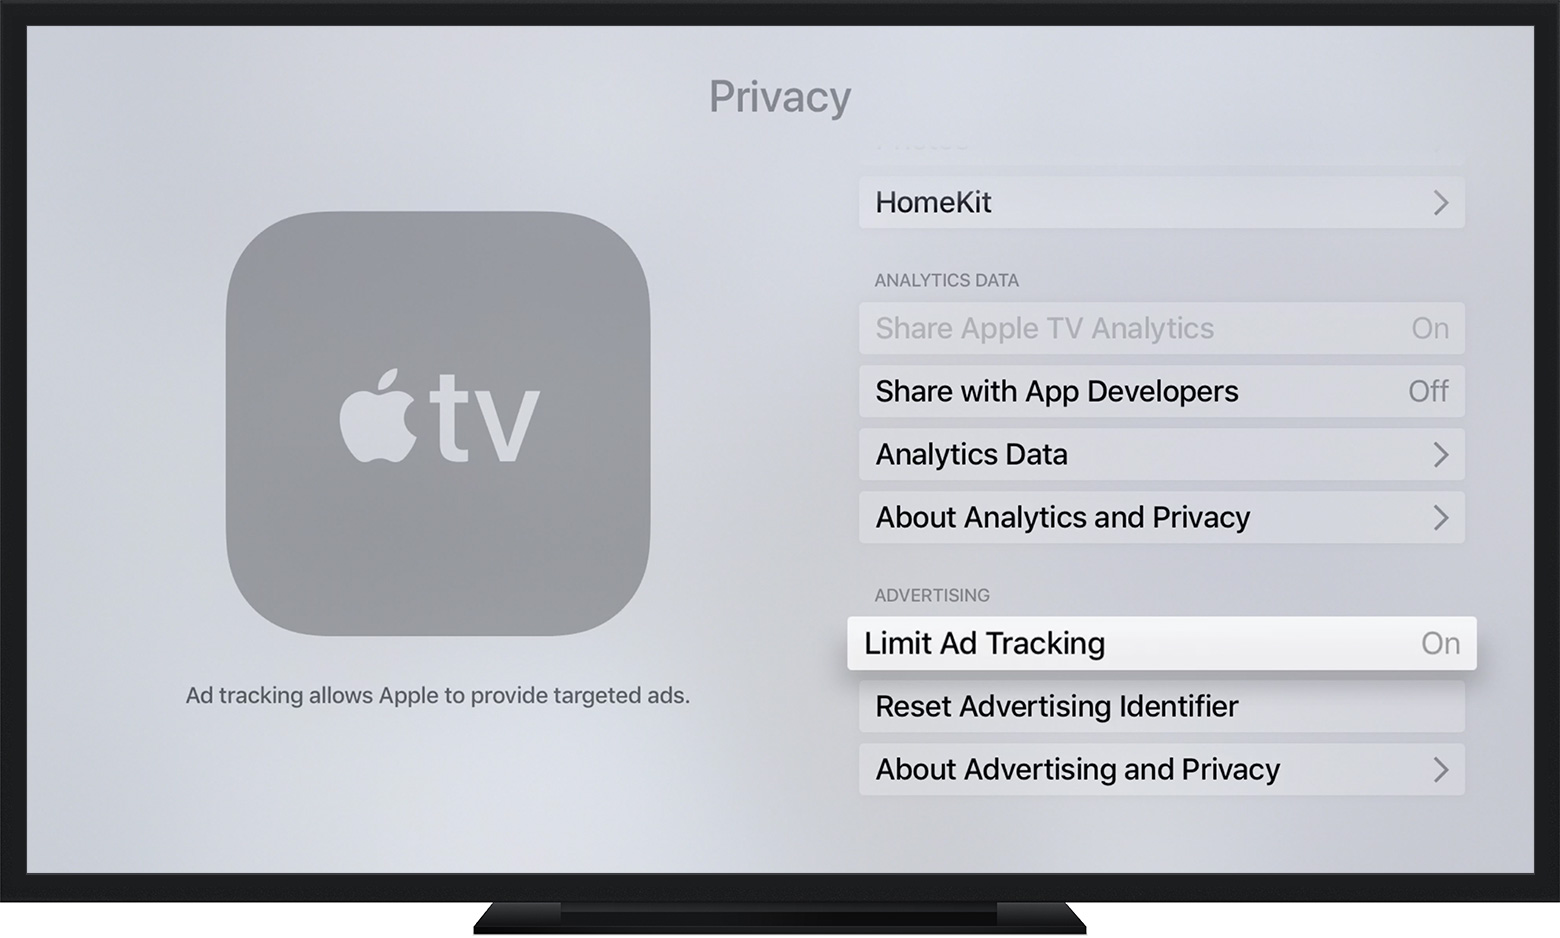 Opt out of interest-based ads in the App Store and Apple